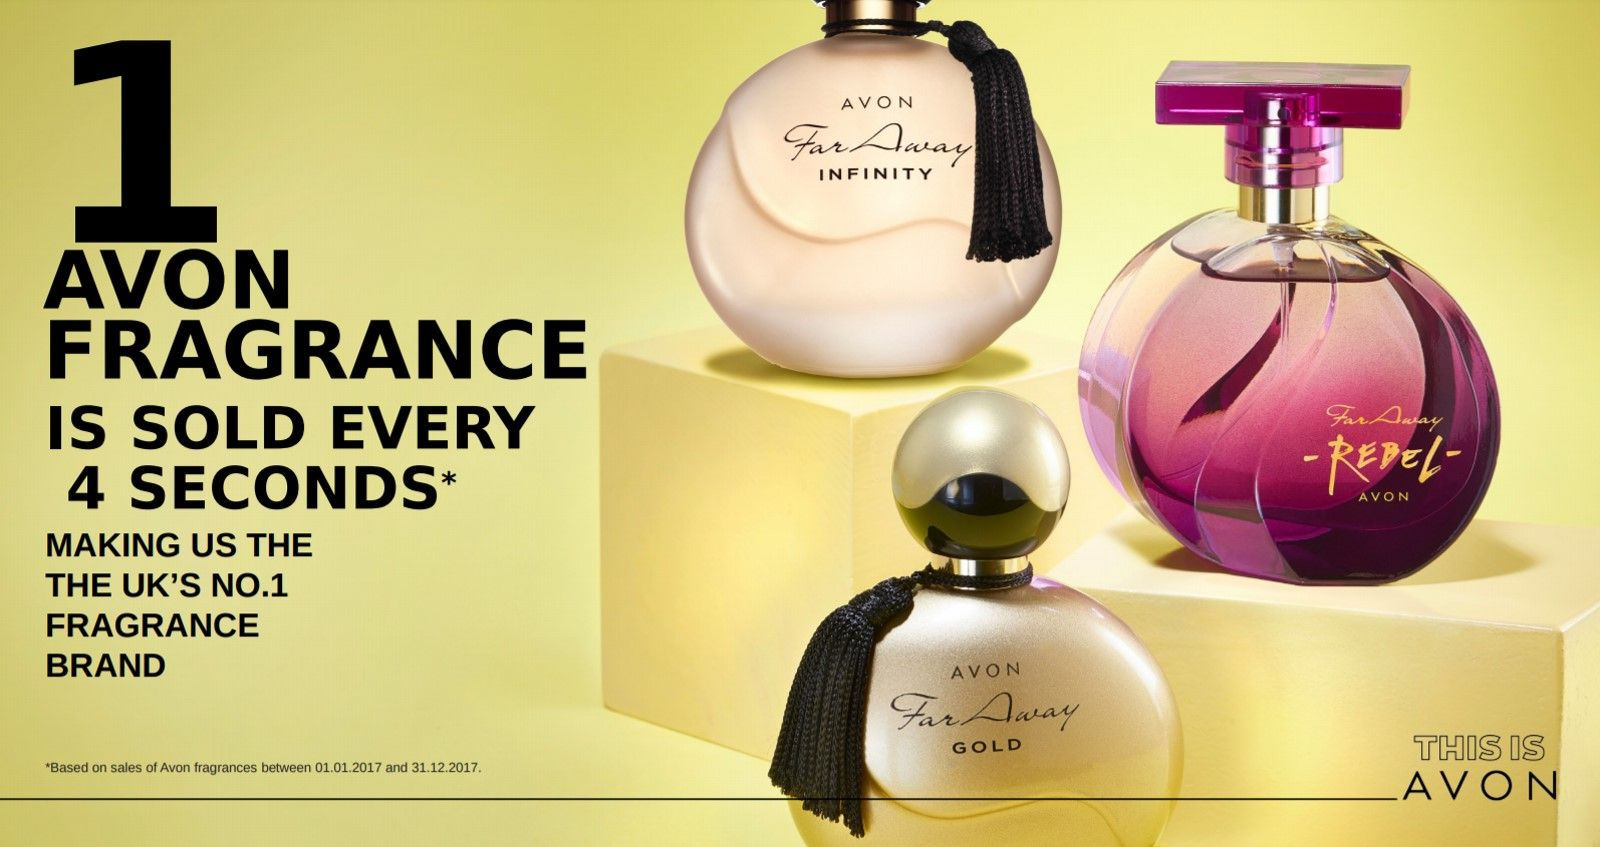 1 Avon Fragrance sold every 4 seconds. I love the Far Away